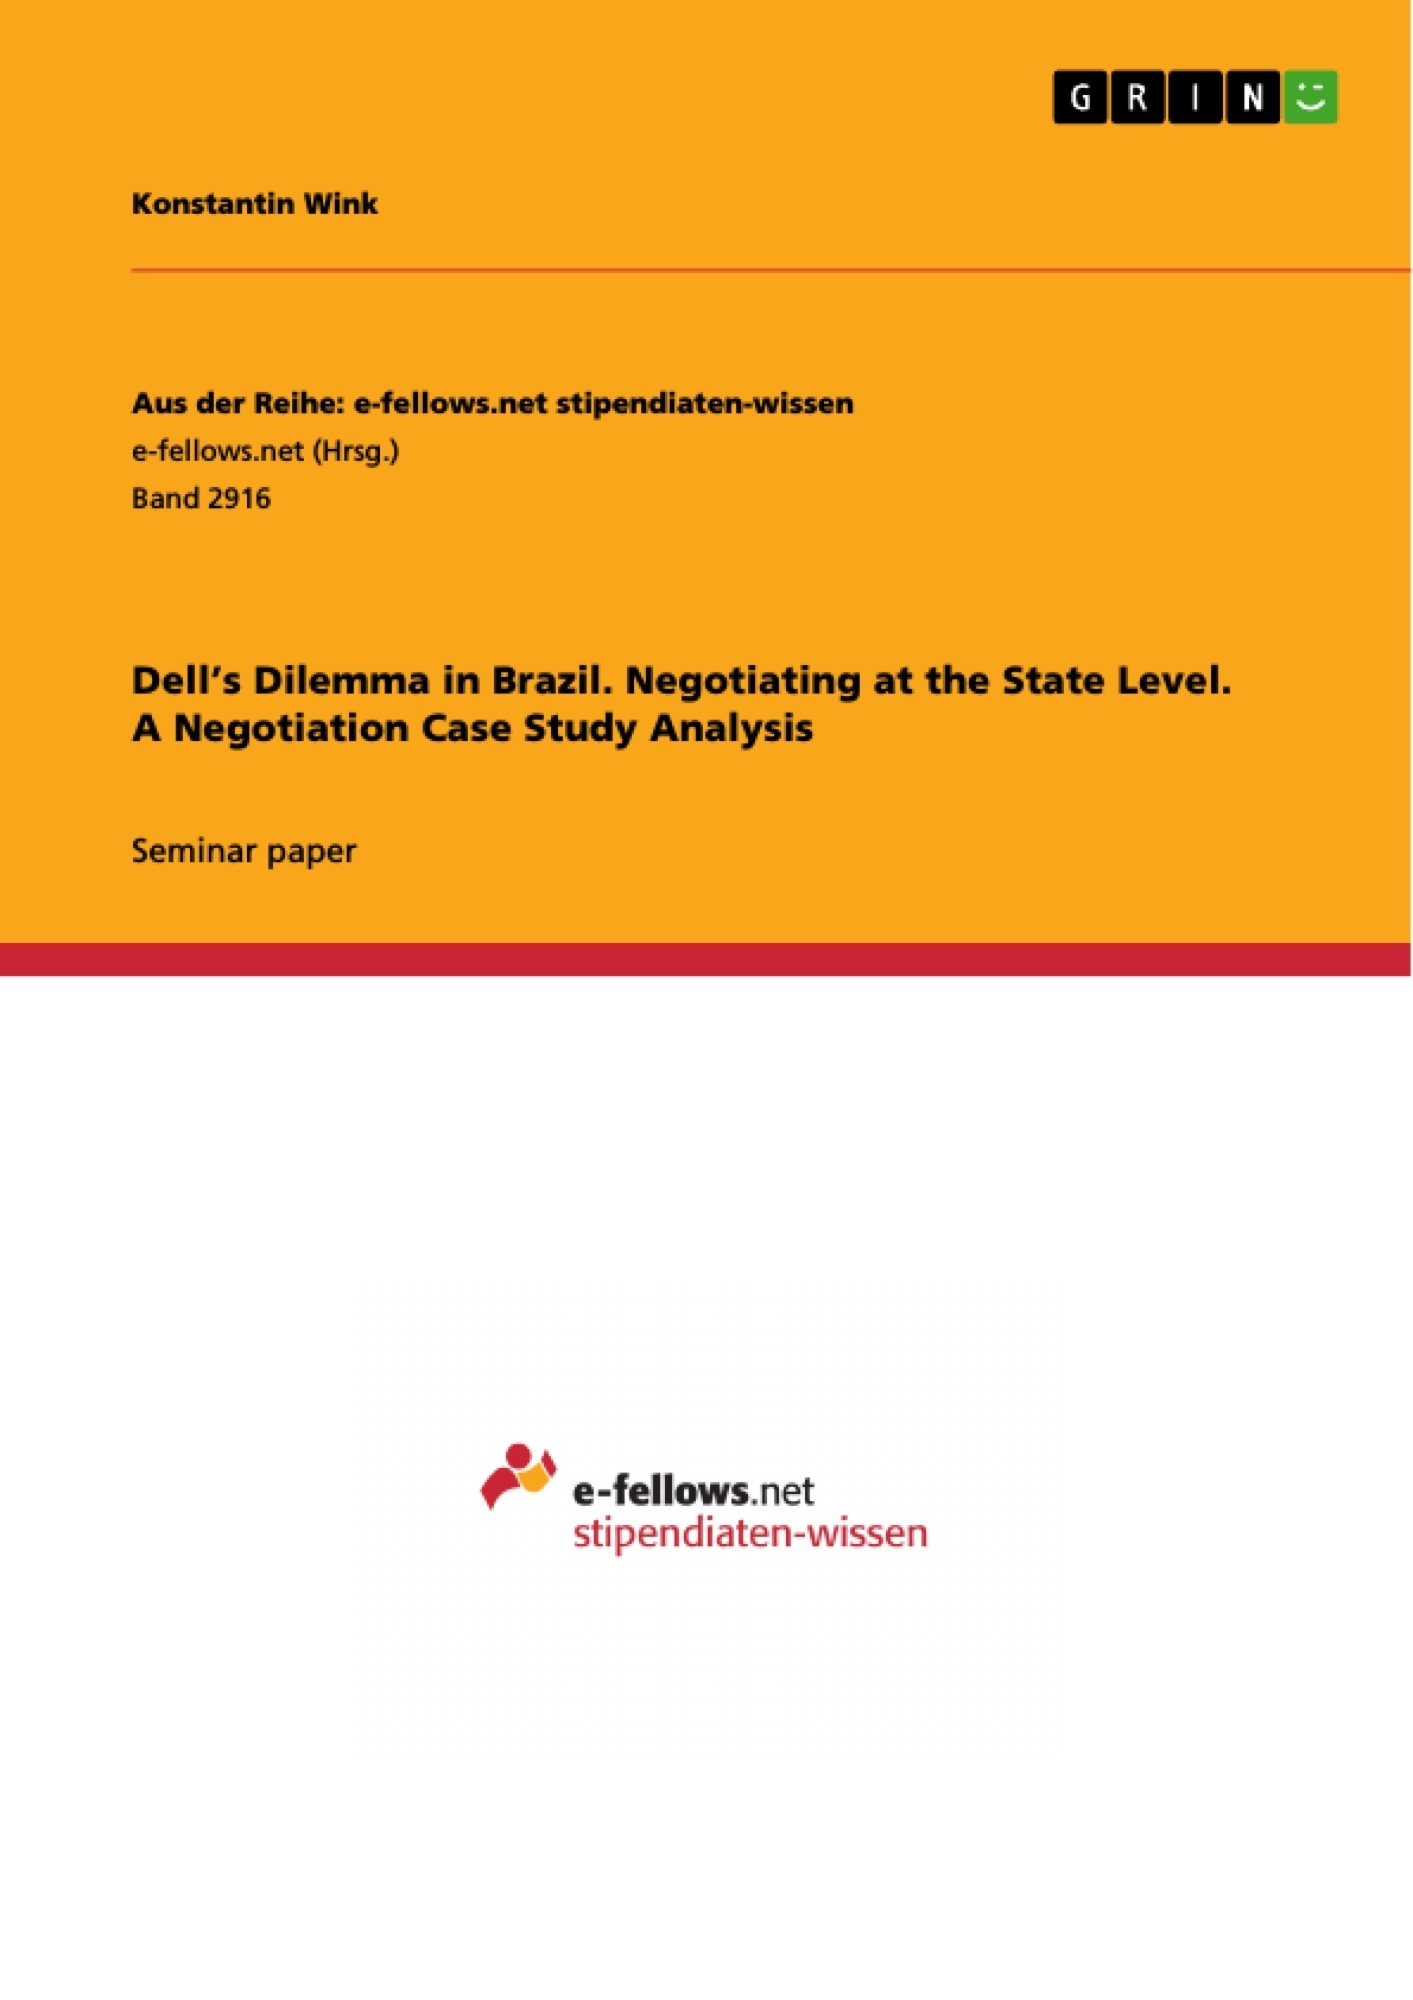 Title: Dell's Dilemma in Brazil. Negotiating at the State Level. A Negotiation Case Study Analysis